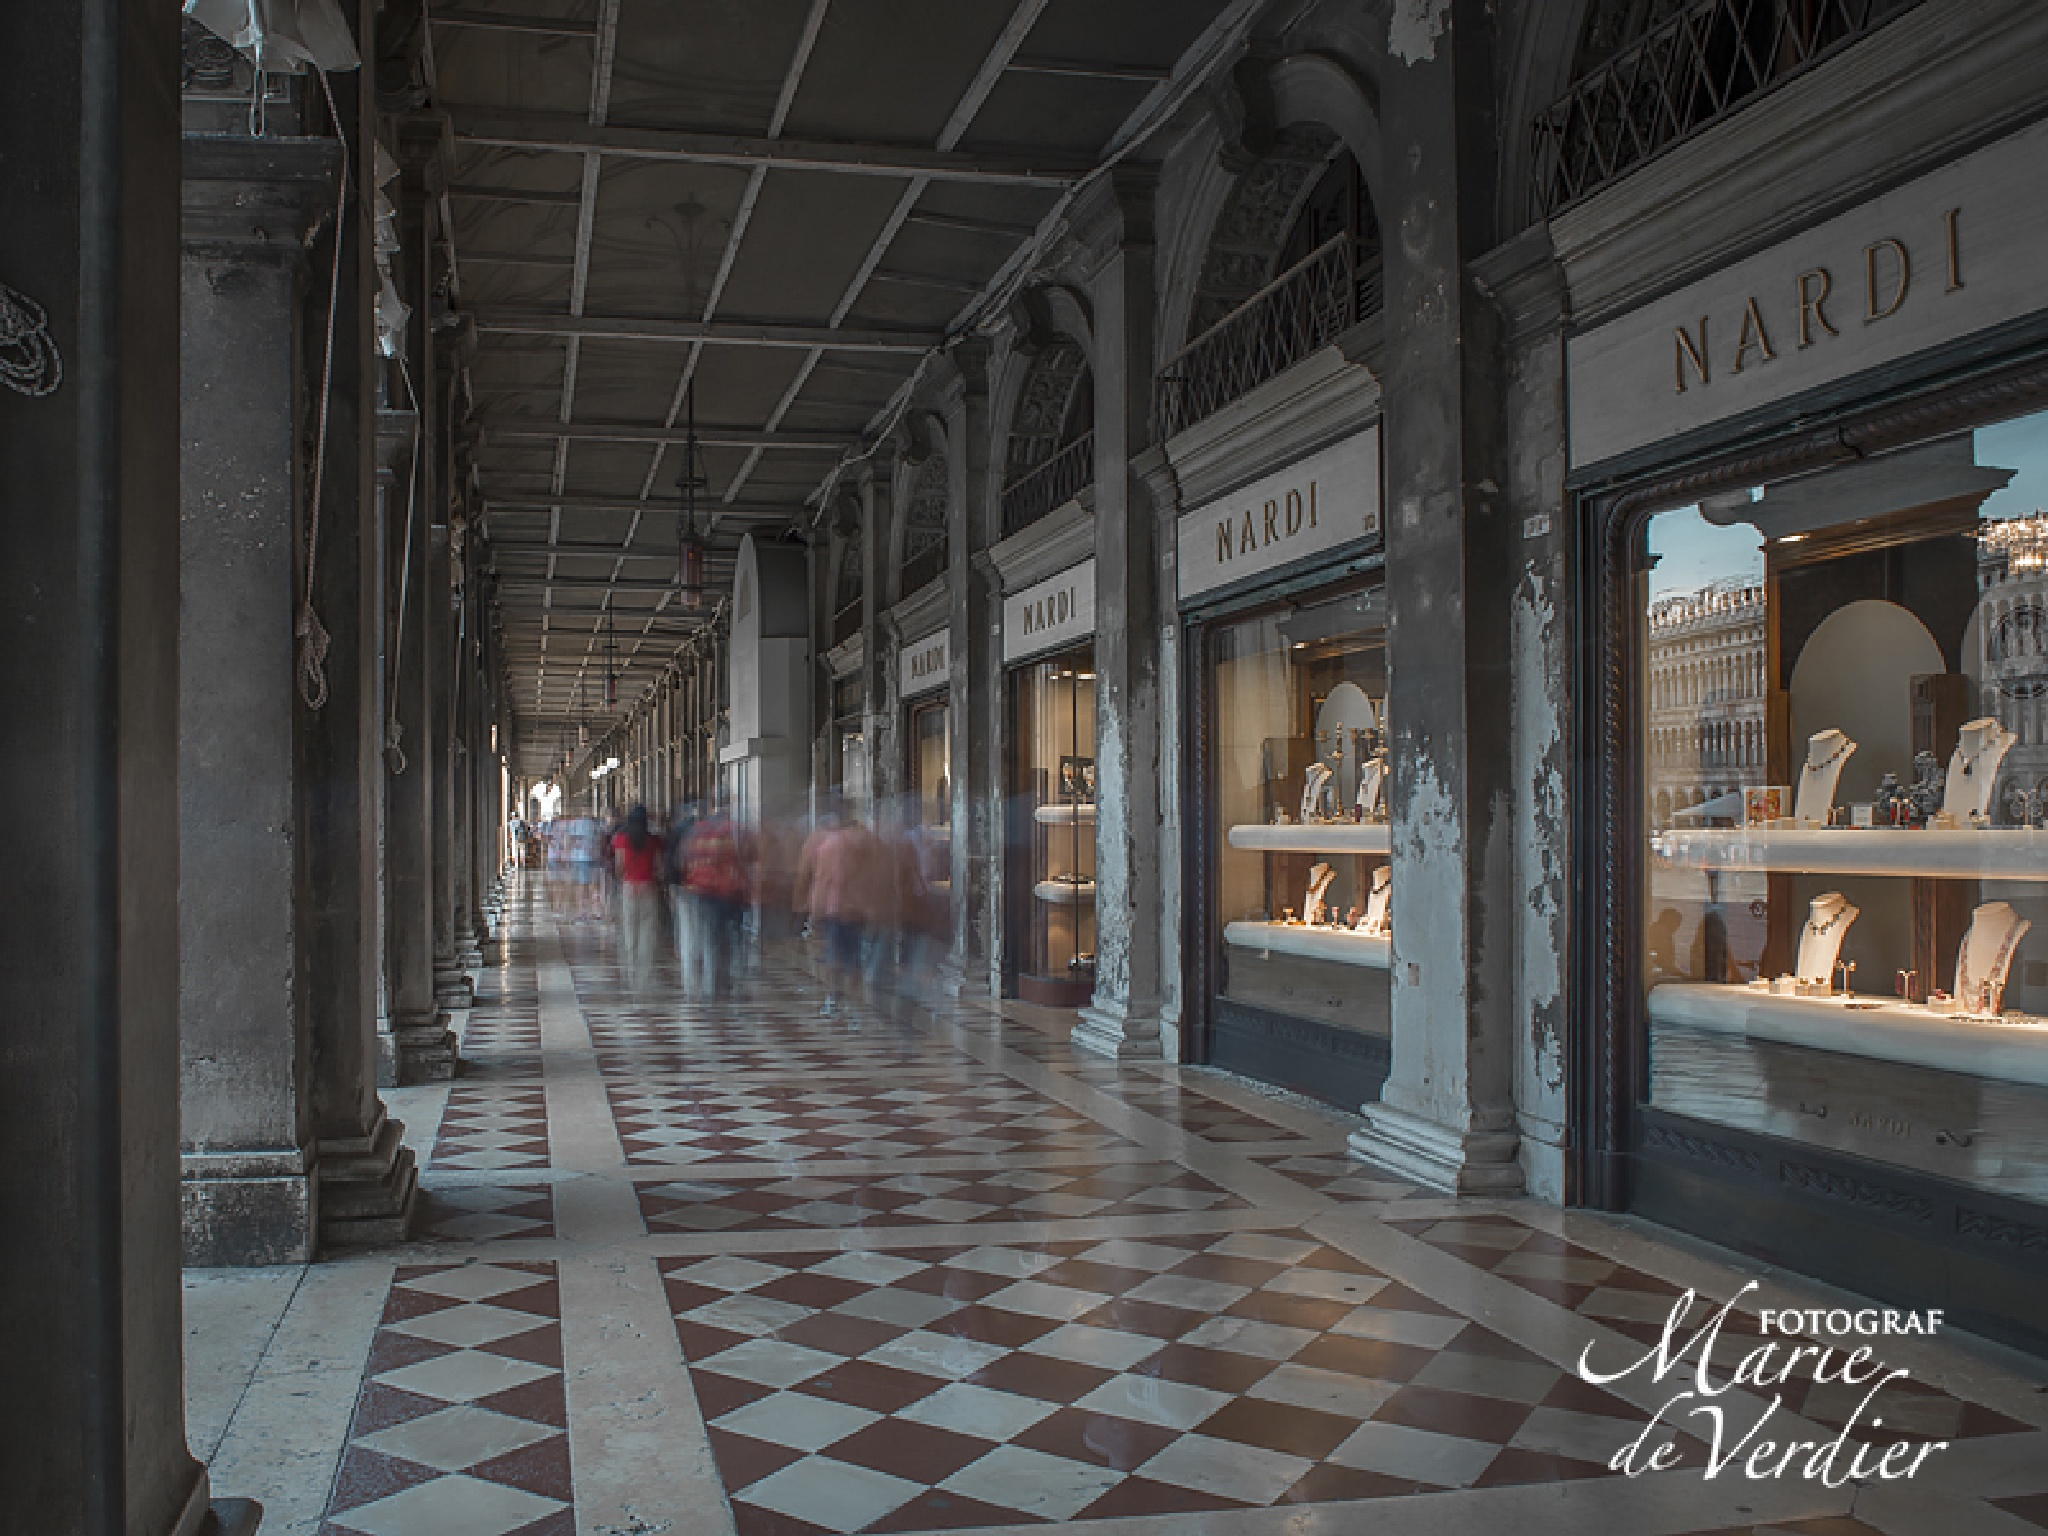 Mall by Piazza San Marco by marie.deverdier.persson